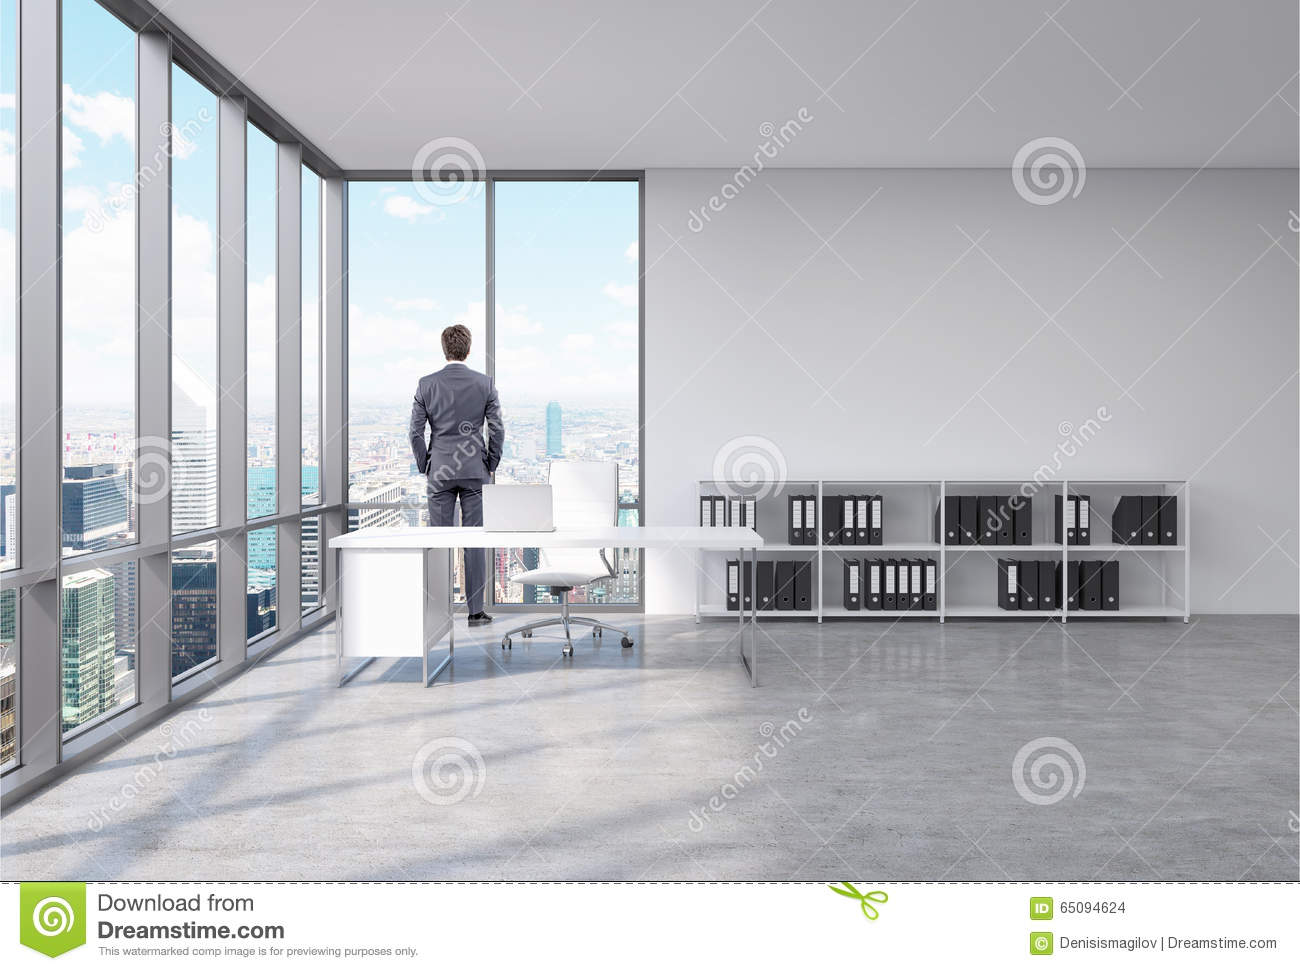 Man In An Office Front Of The Window